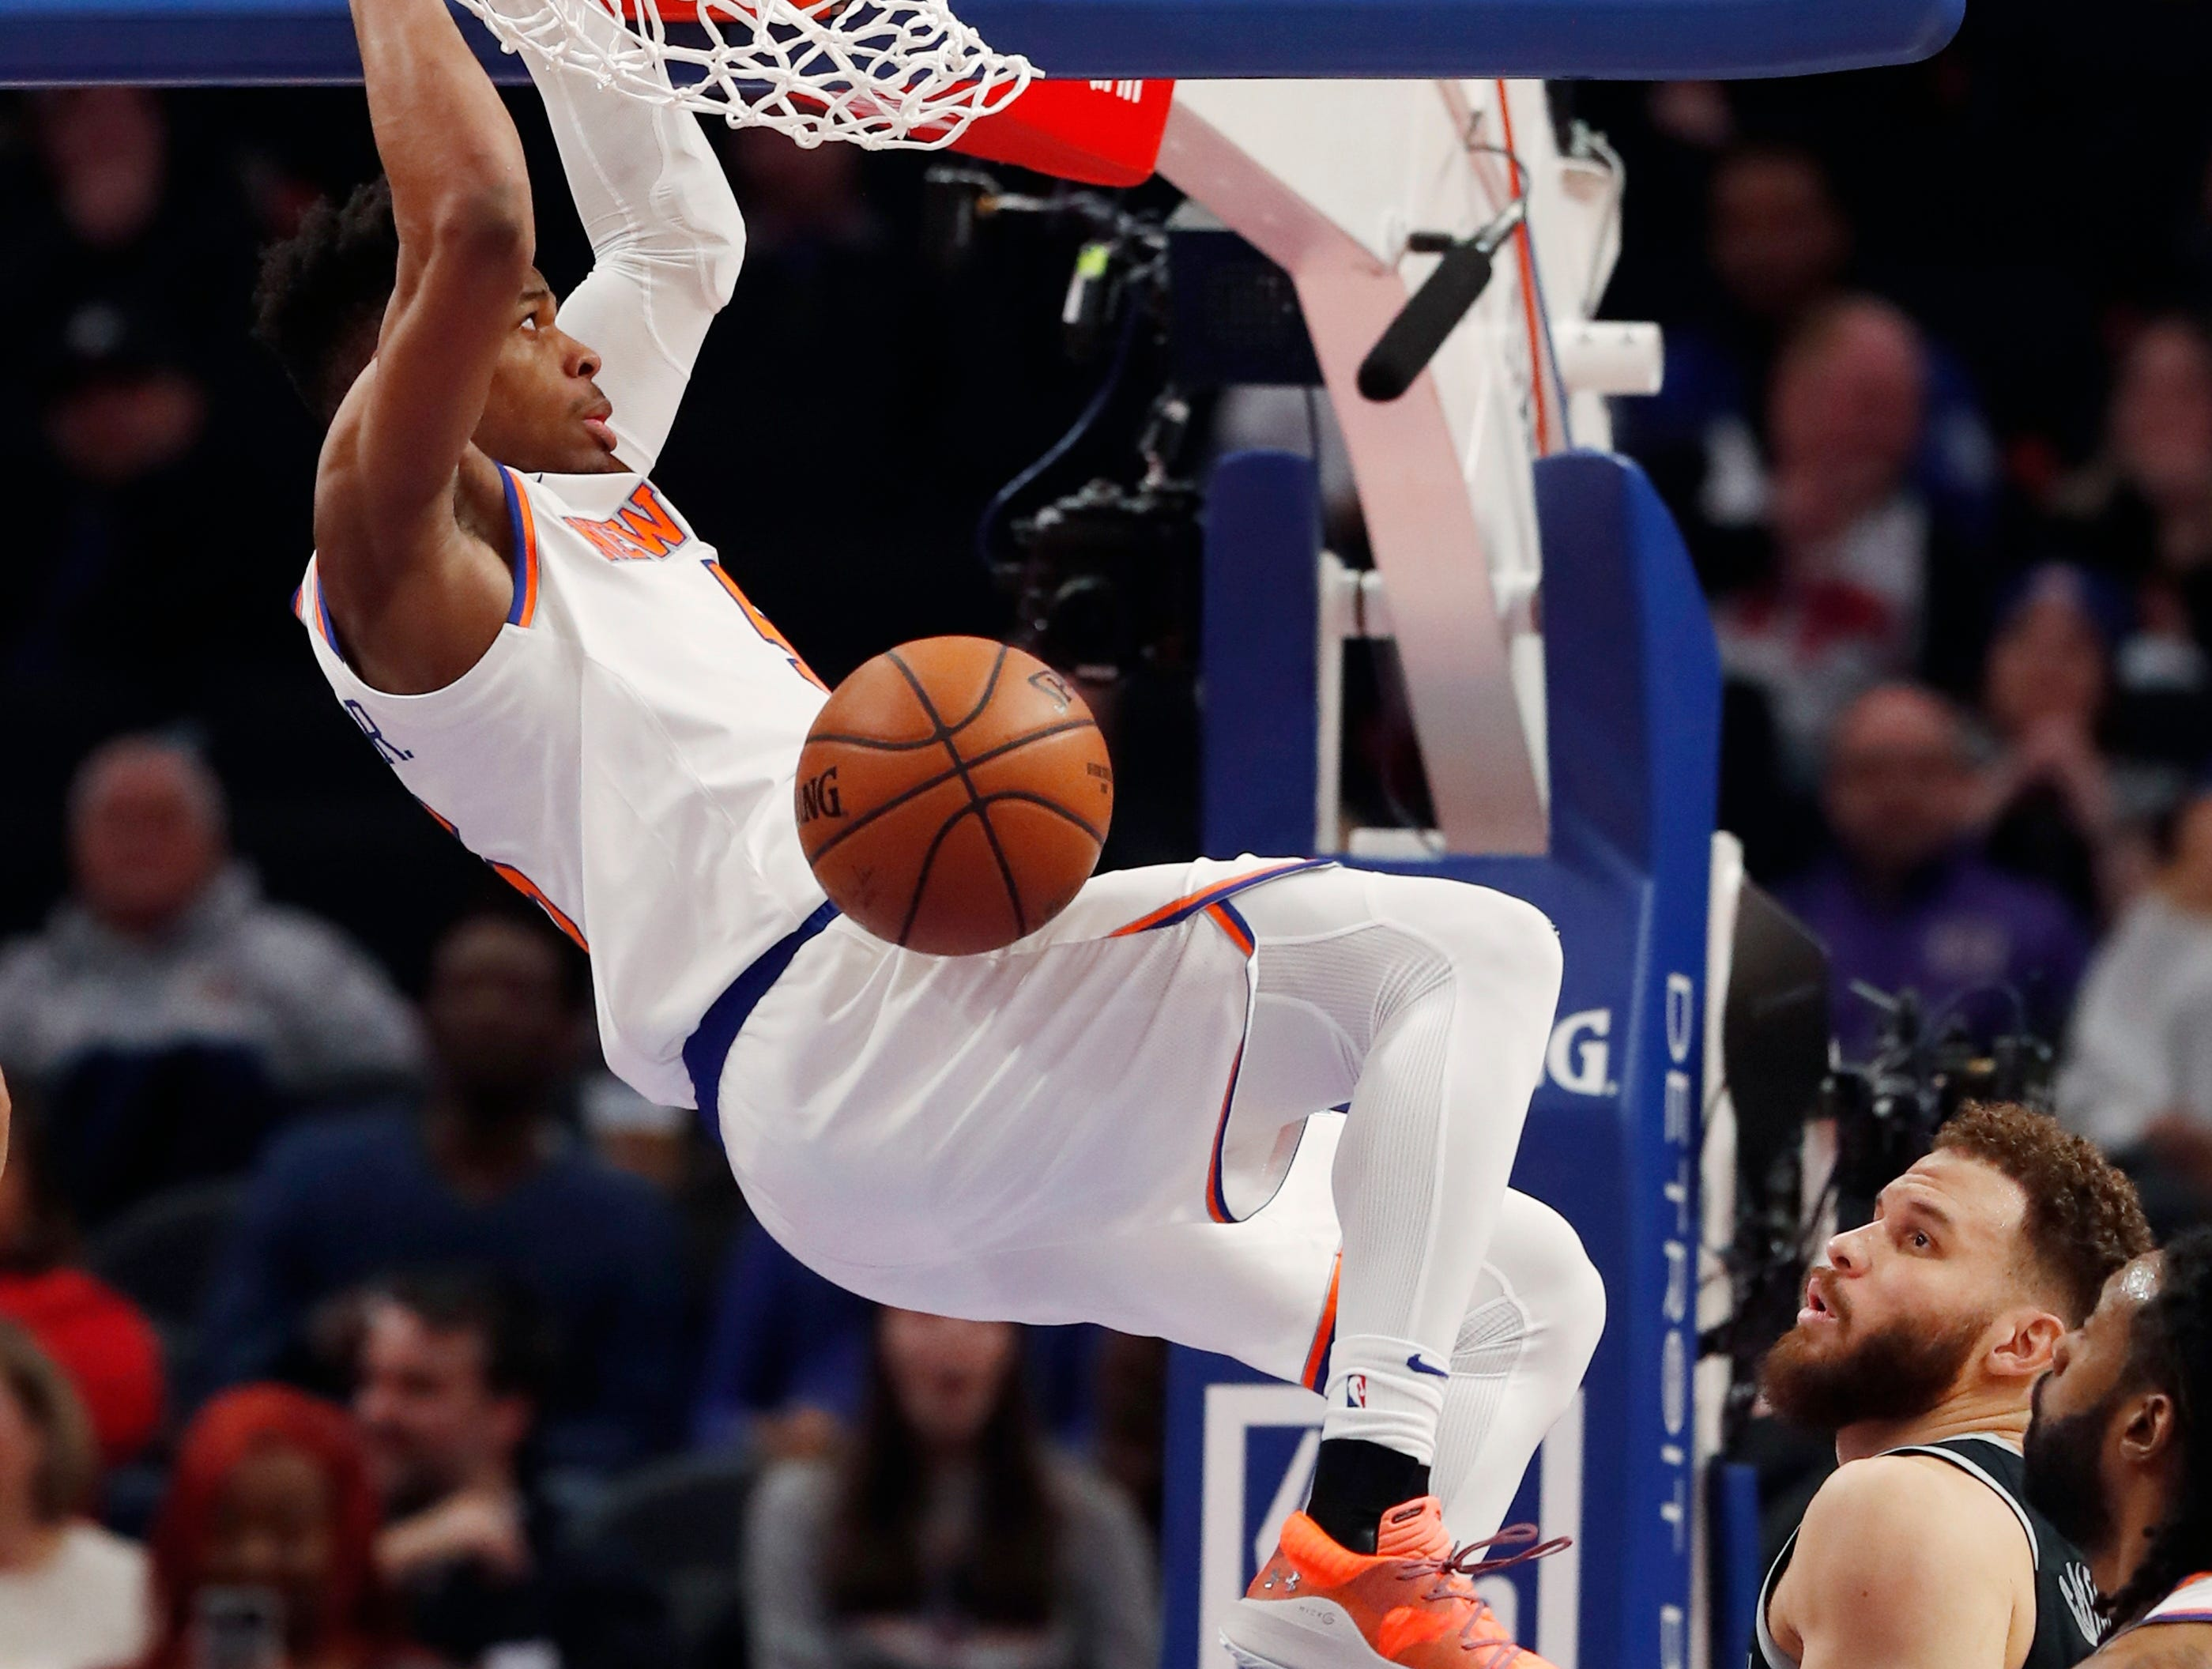 New York Knicks guard Dennis Smith Jr. dunks as Detroit Pistons forward Blake Griffin watches during the first half of an NBA basketball game Friday, Feb. 8, 2019, in Detroit.